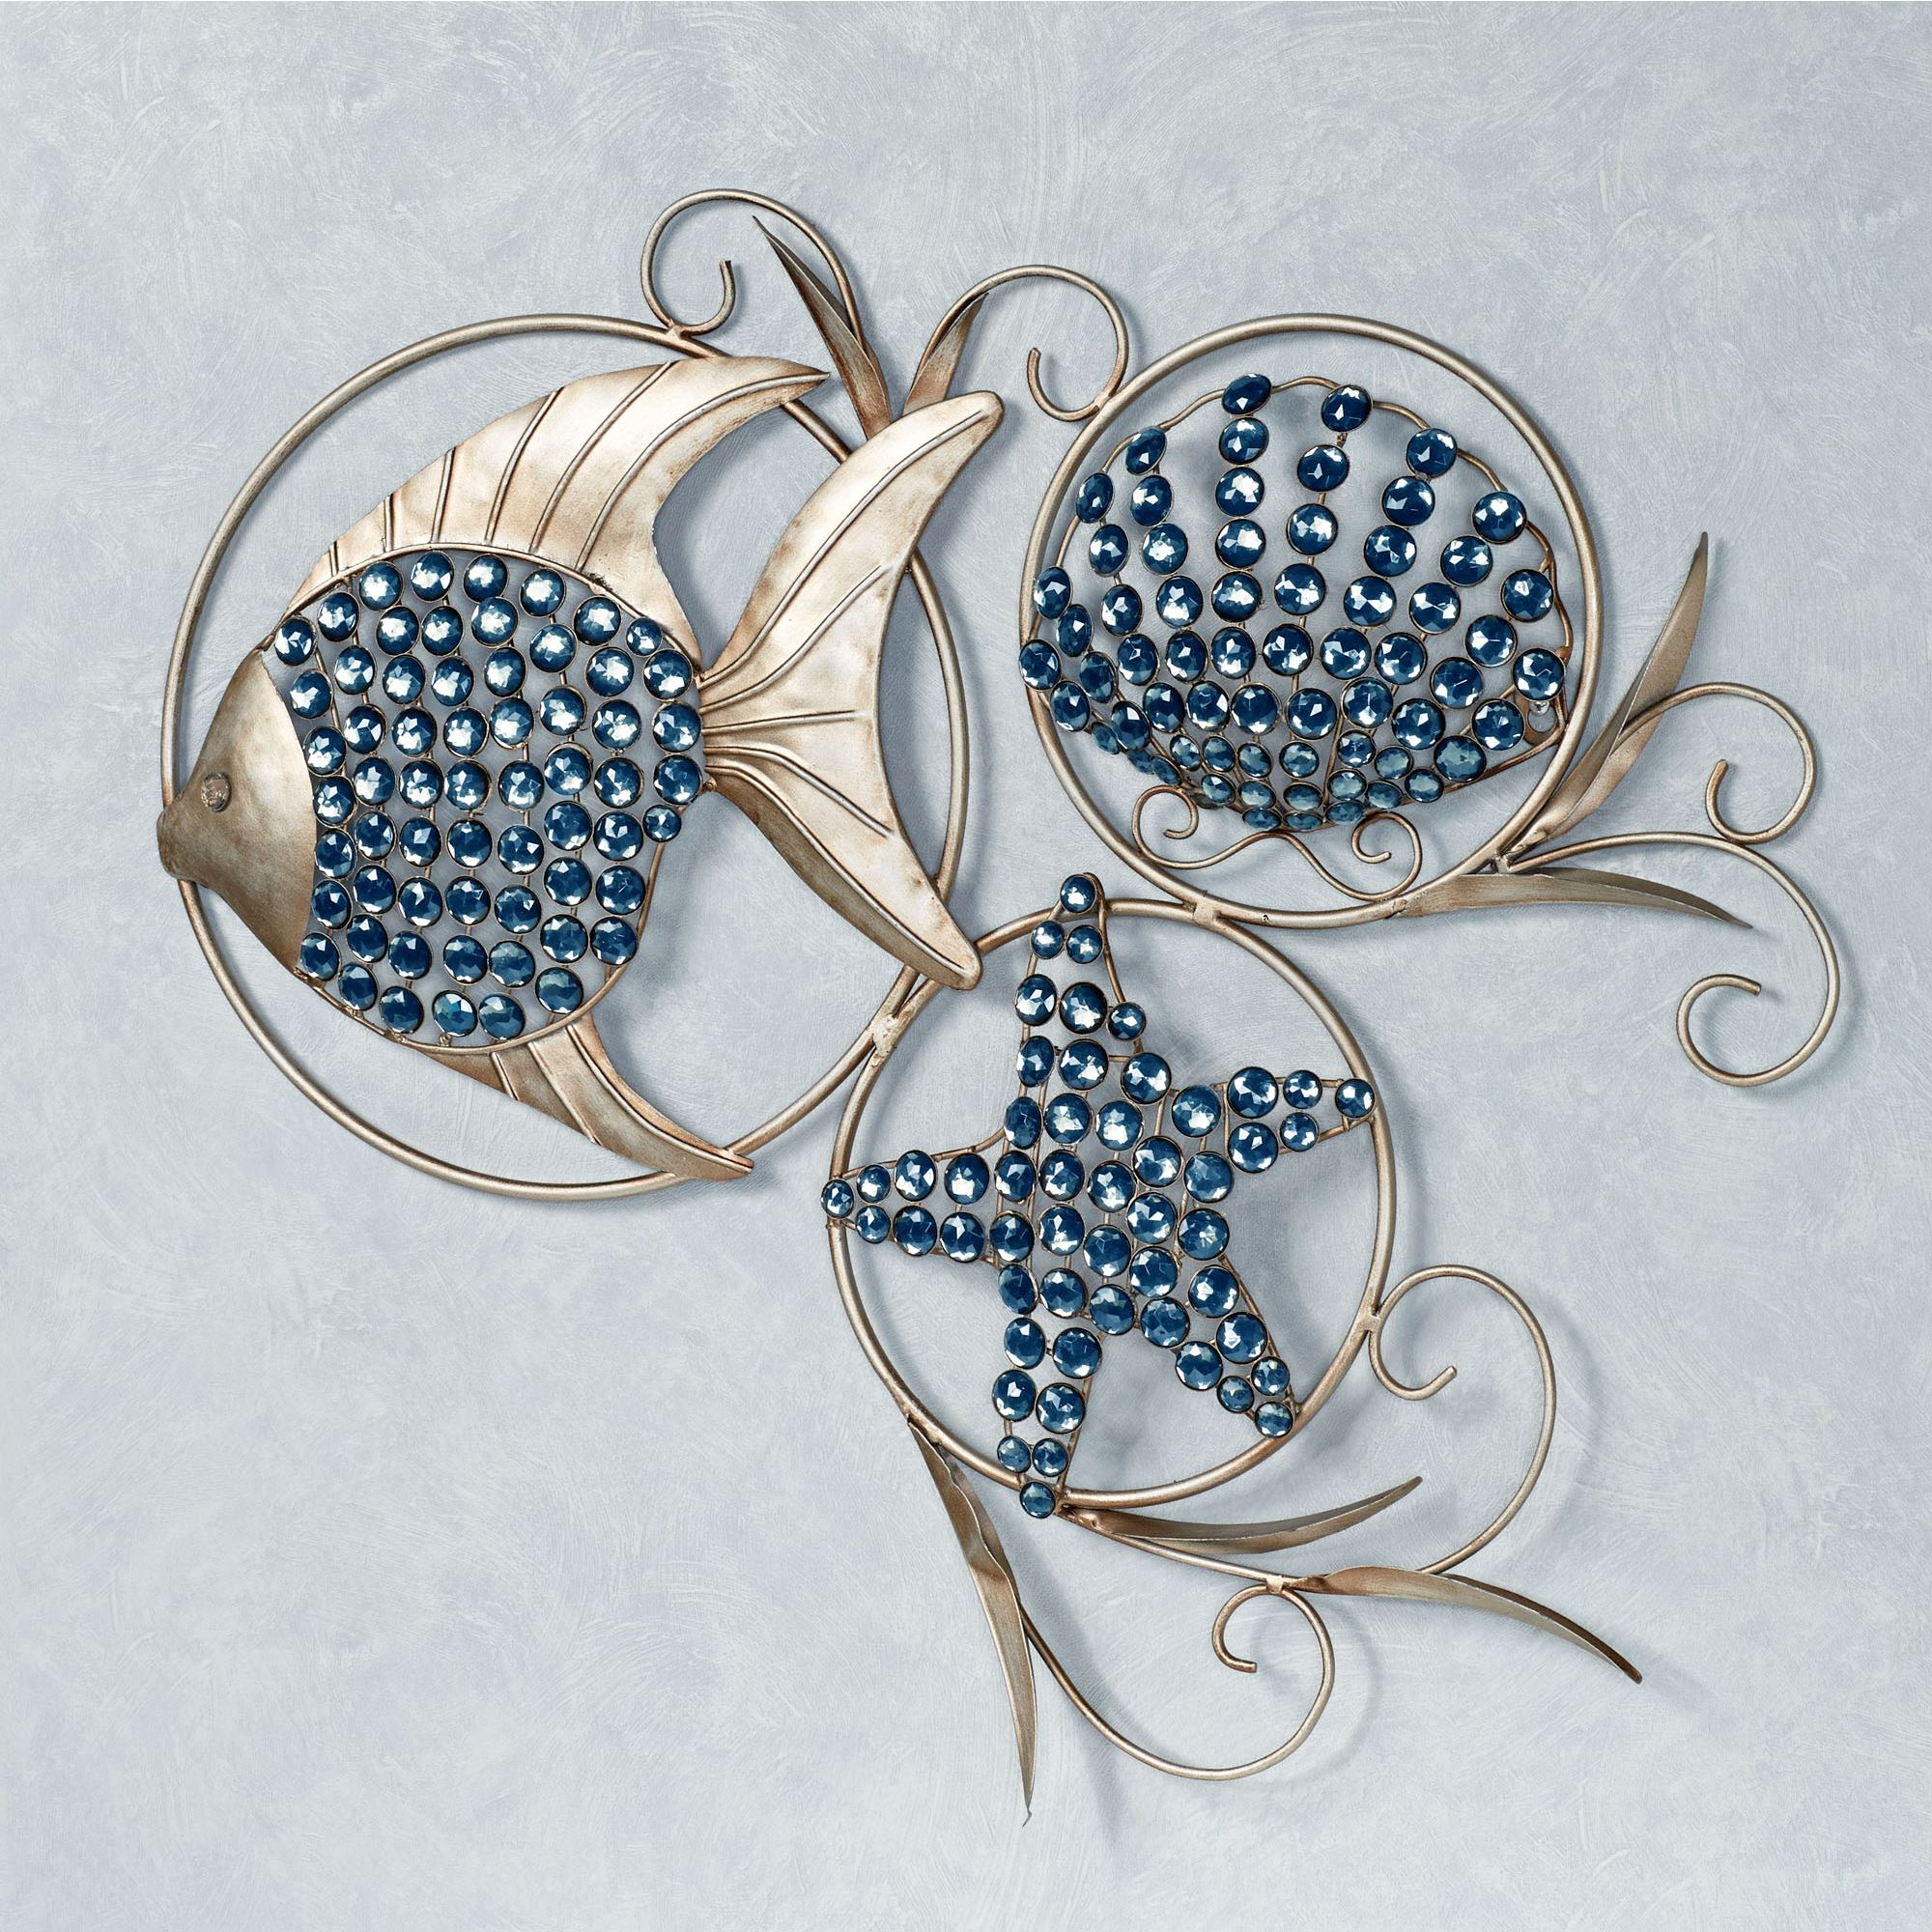 Aufregend Wall Art Metal Leaves Nautical Branch Flowers Intended For Tree Shell Leaves Sculpture Wall Decor (View 16 of 30)